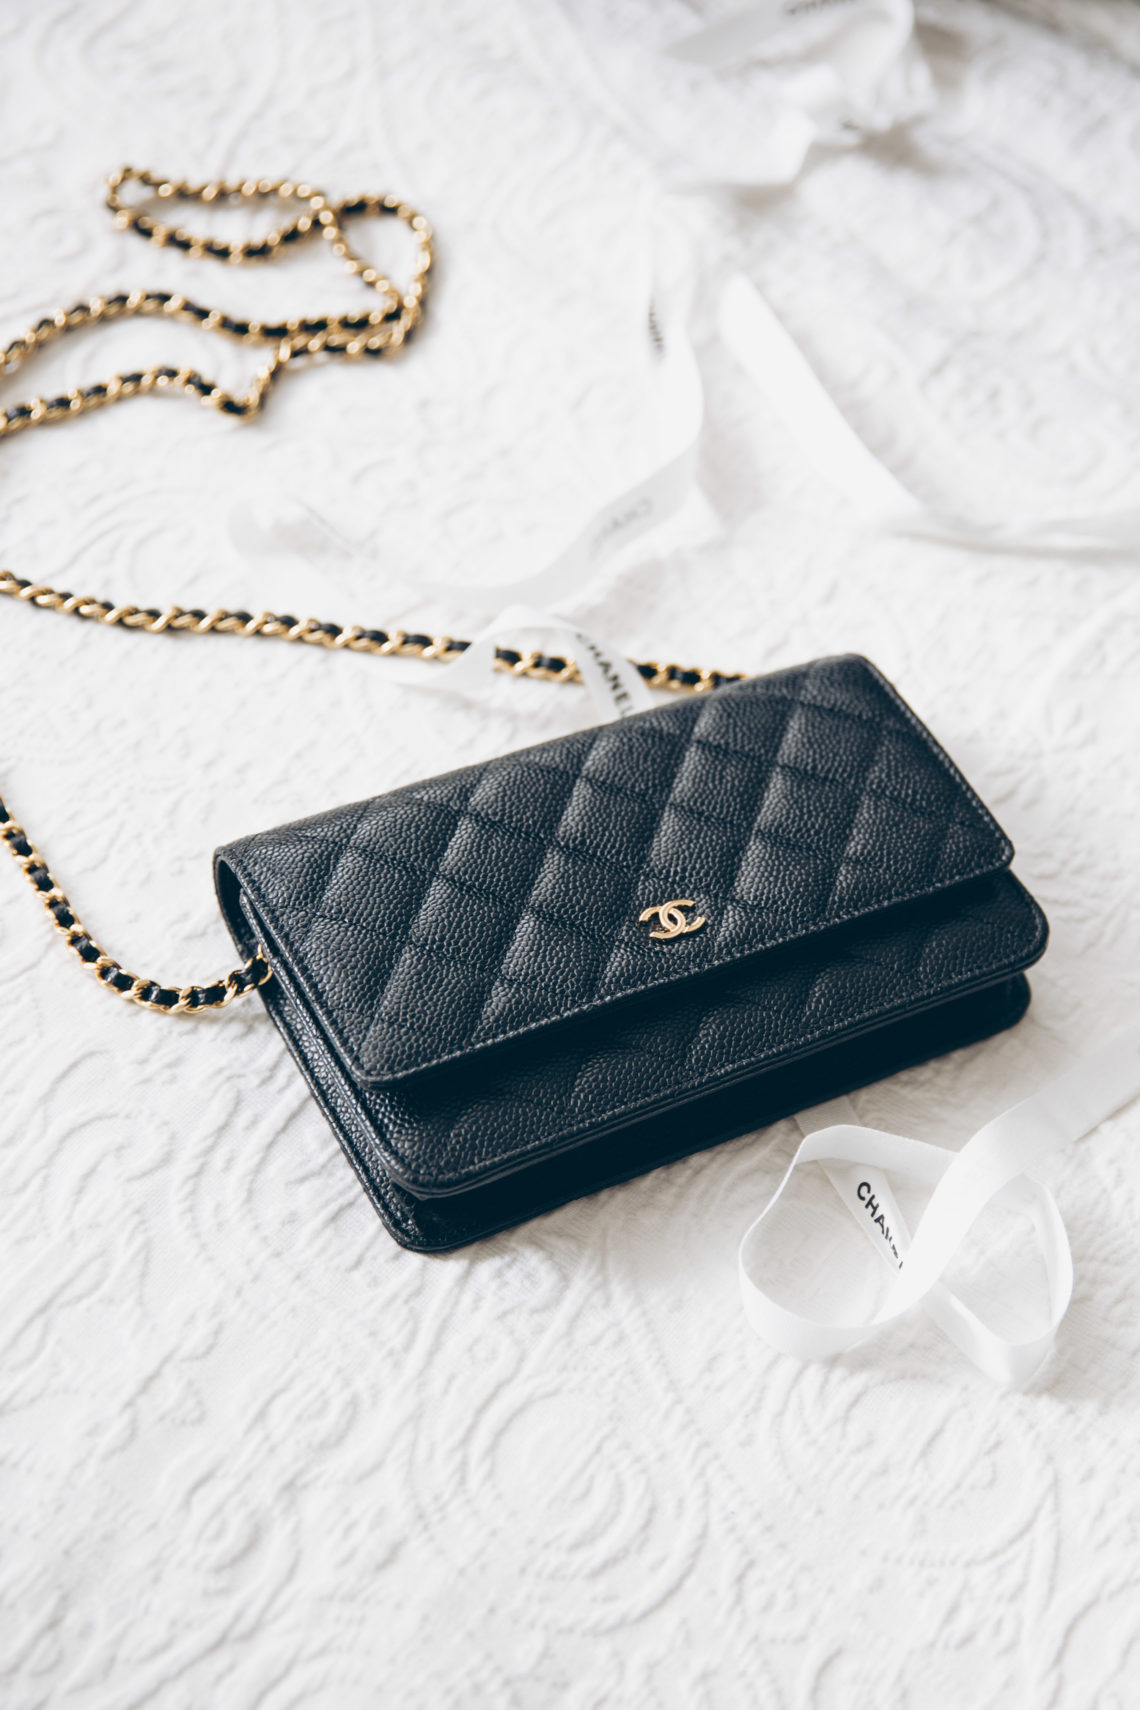 74dde031da50 Review: Chanel Wallet on Chain WOC - You rock my life